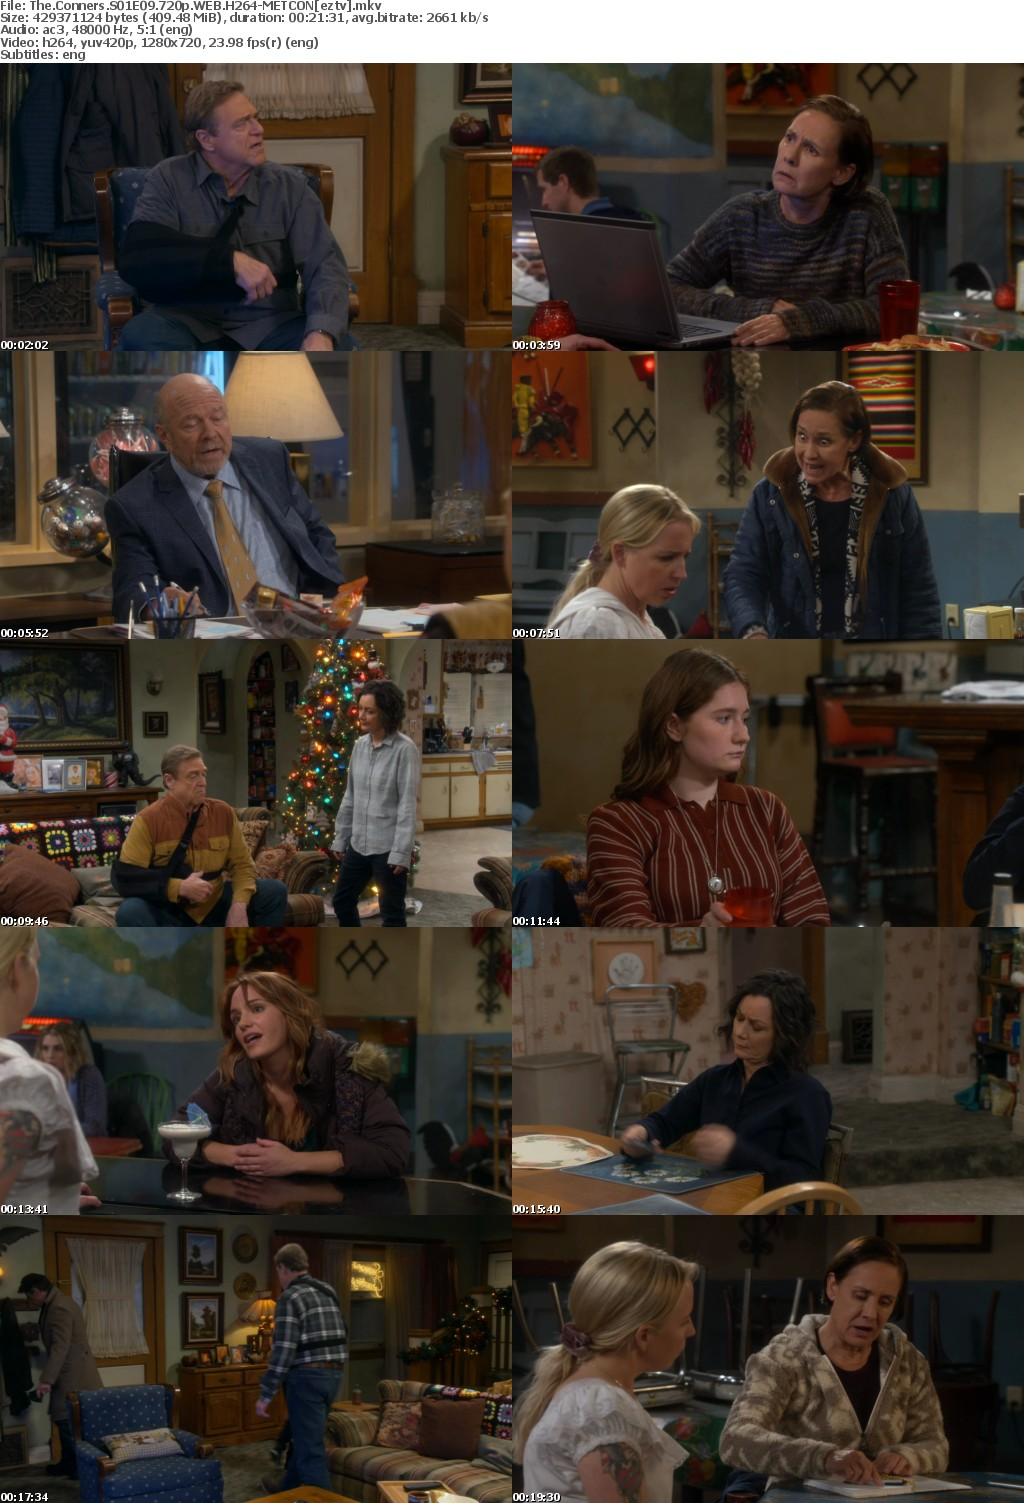 The Conners S01E09 720p WEB H264-METCON